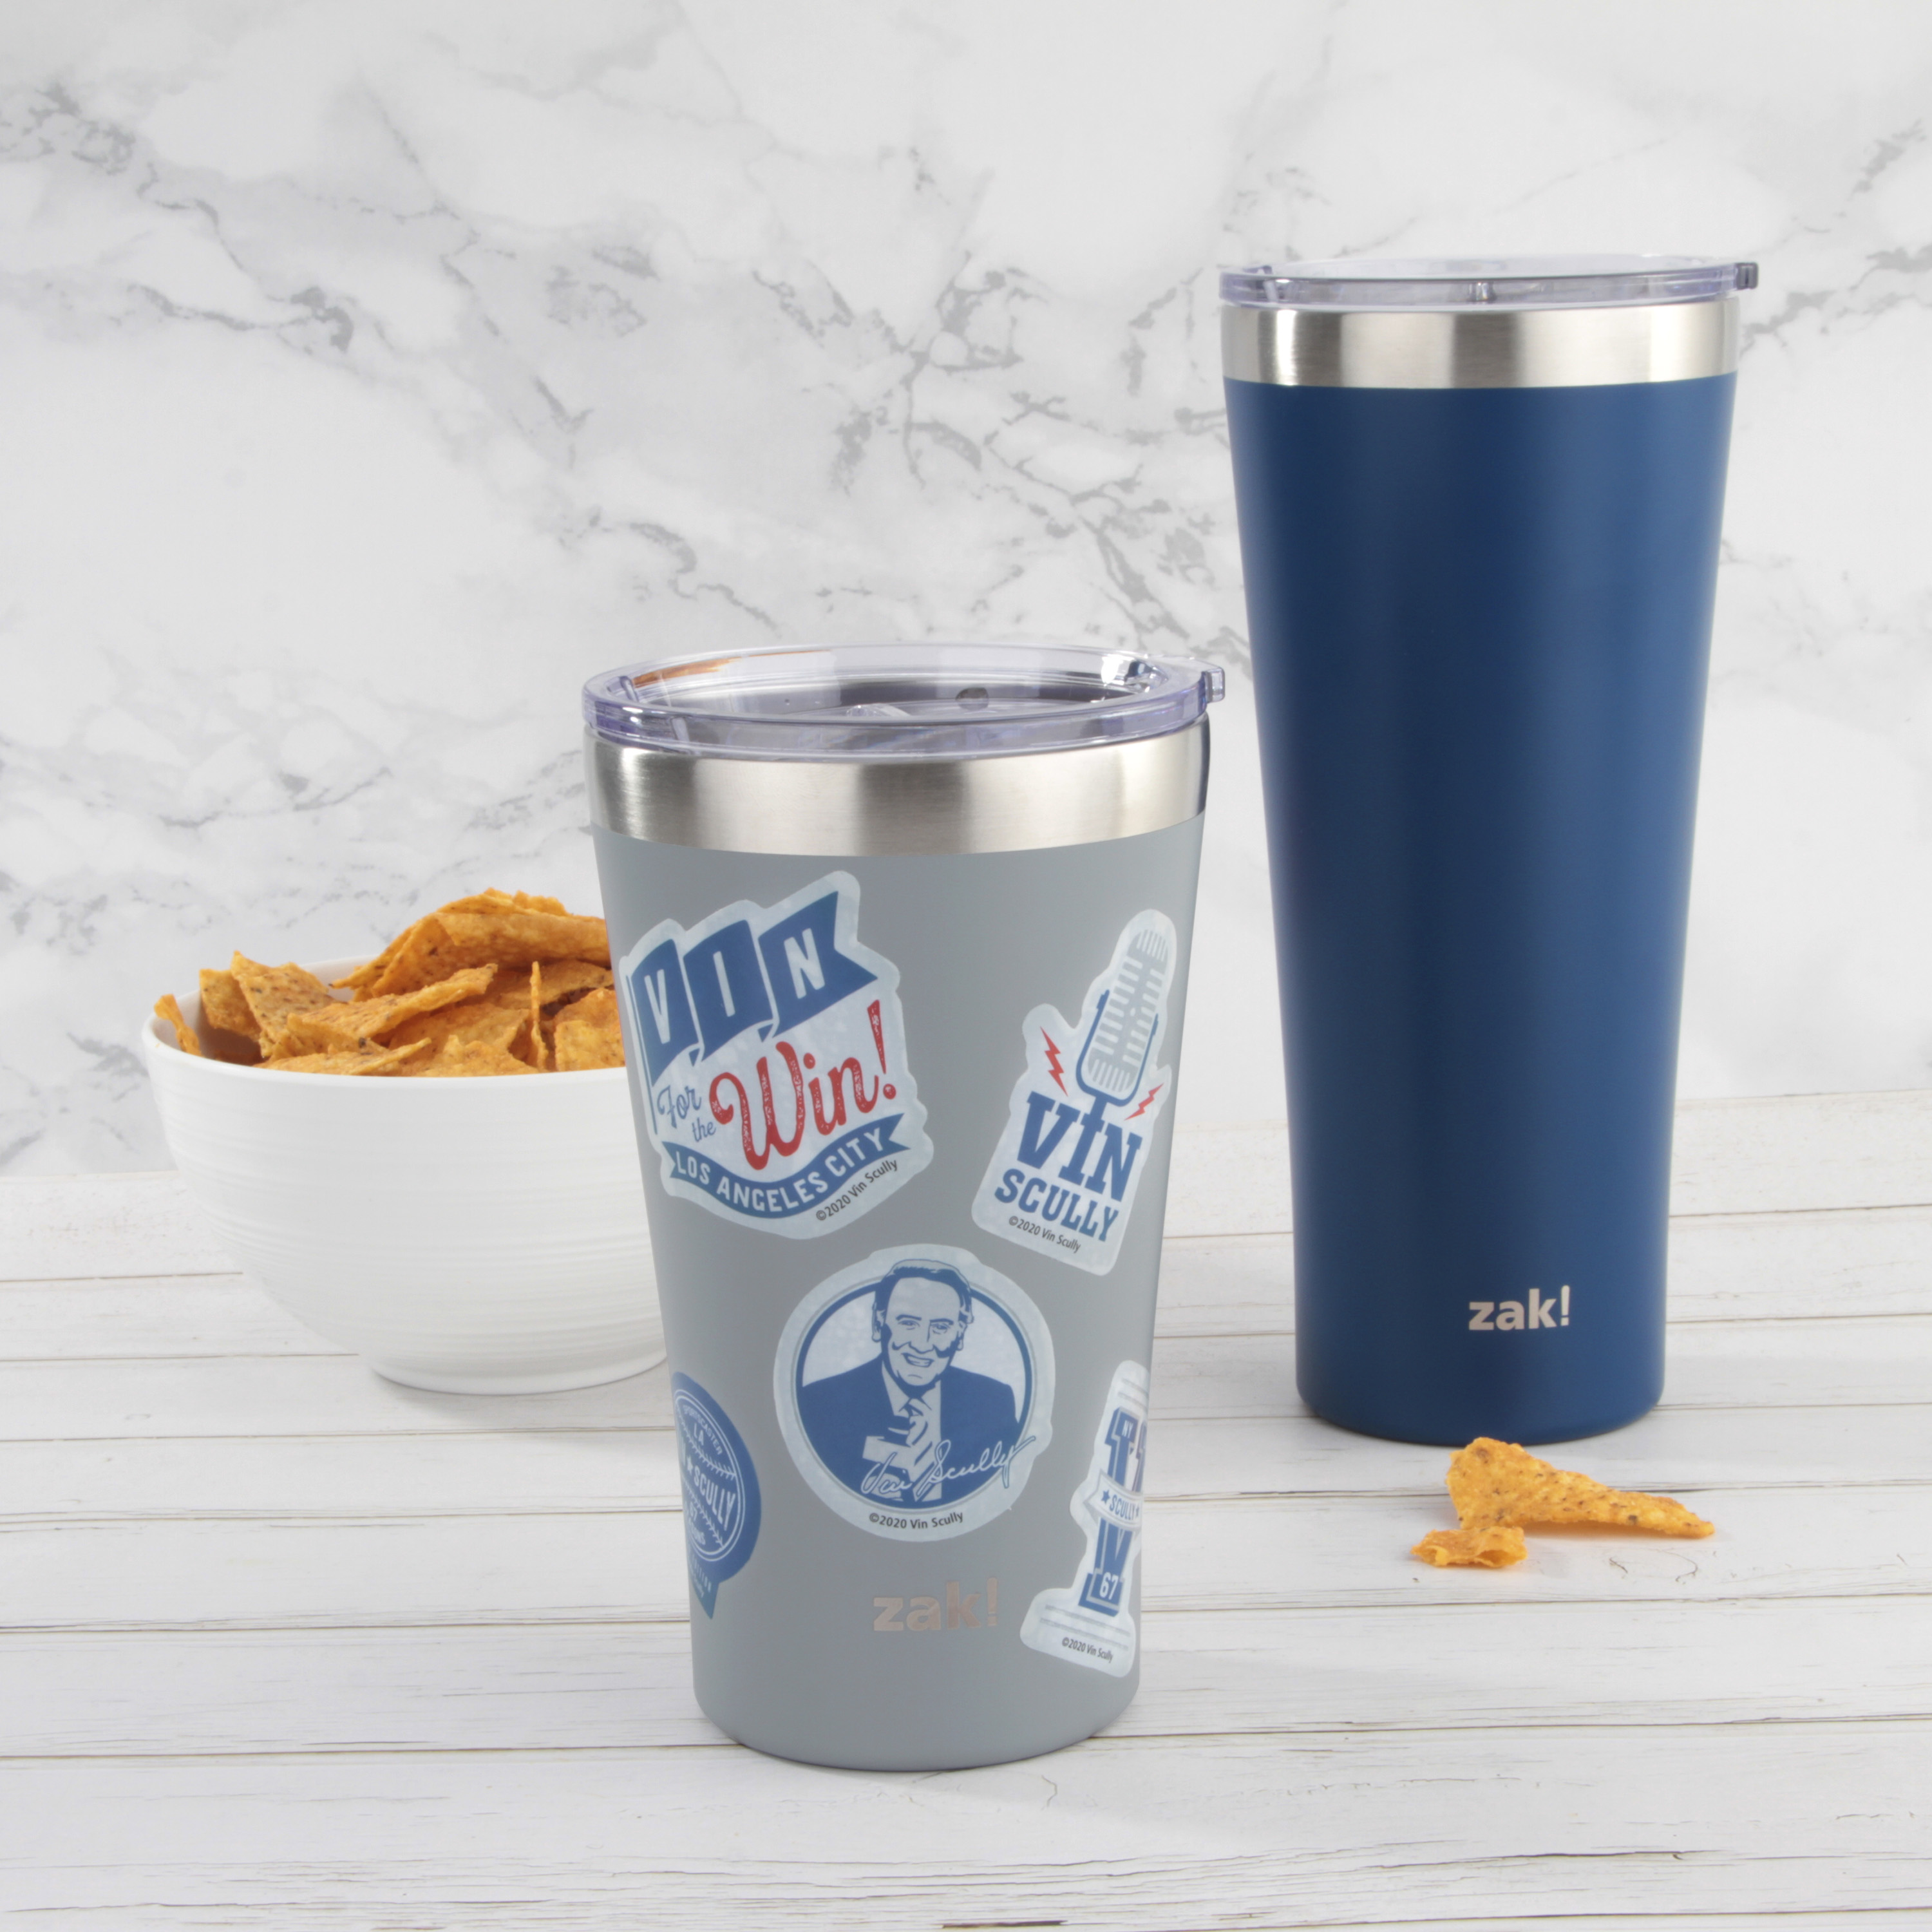 Zak Hydration 20 ounce Vacuum Insulated Stainless Steel Tumbler, Vin Scully, 2-piece set slideshow image 2